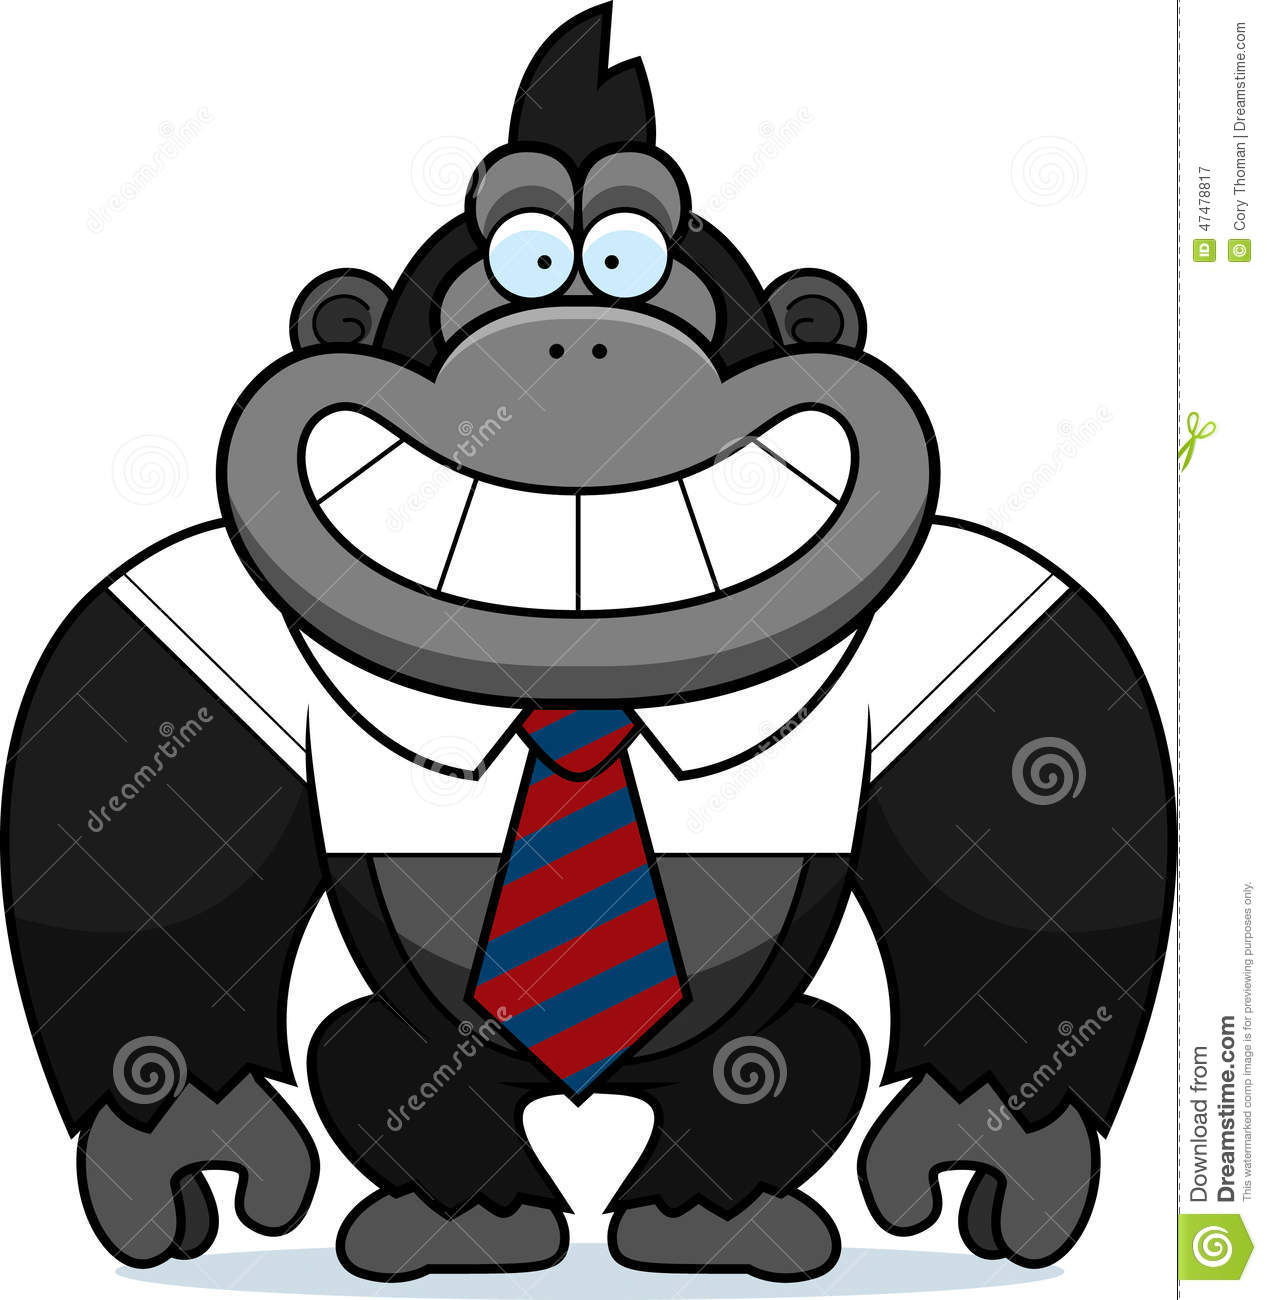 Cartoon Gorilla Tie Stock Vector - Image: 47478817